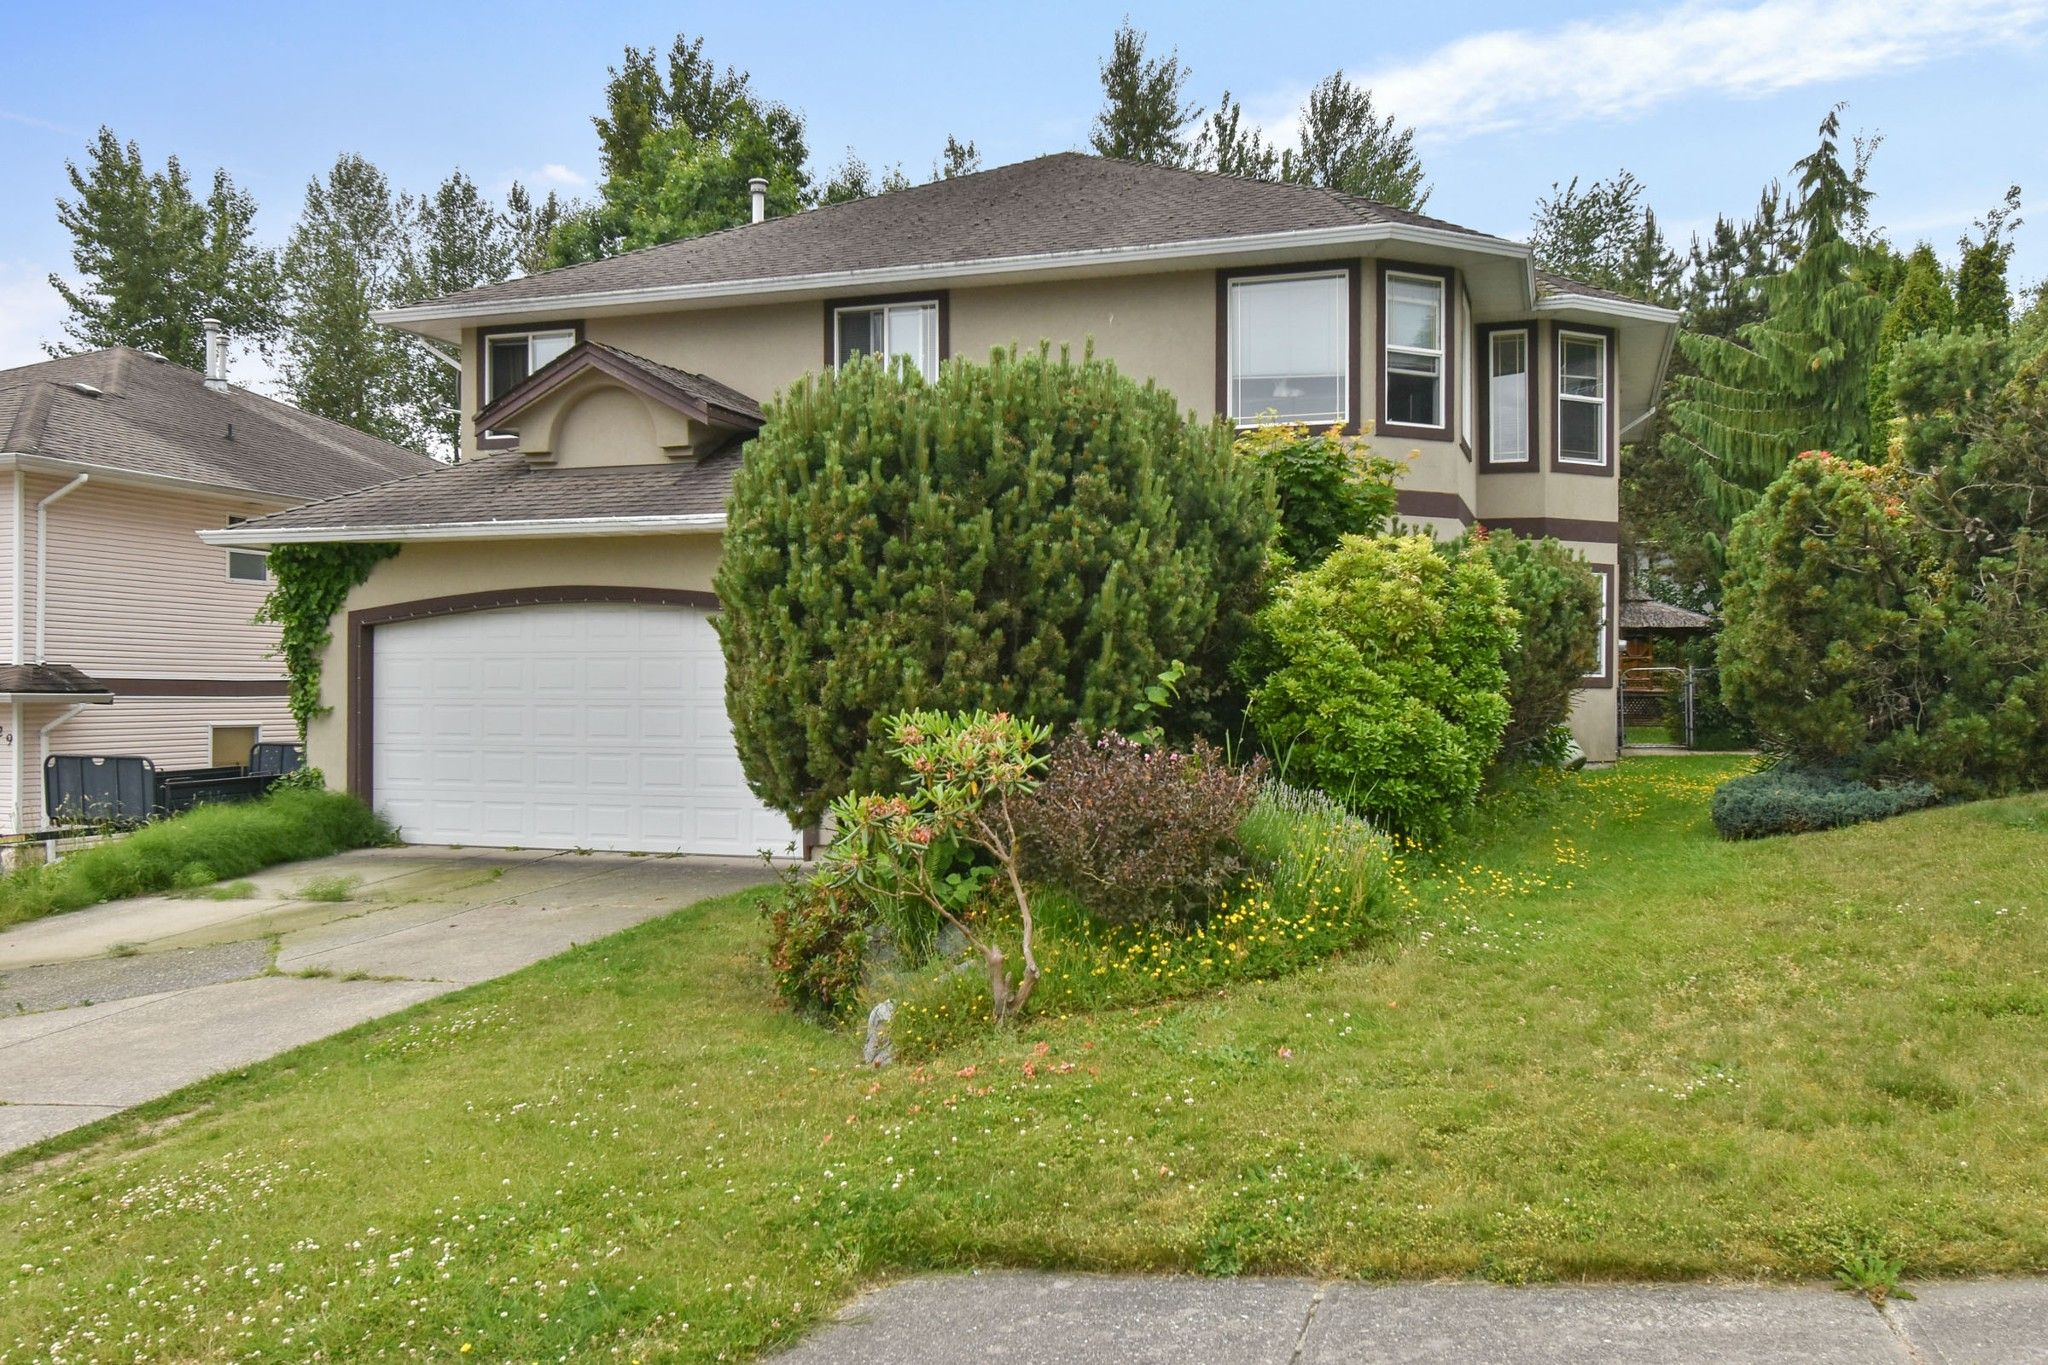 Main Photo: 7833 TAVERNIER Terrace in Mission: Mission BC House for sale : MLS®# R2594330